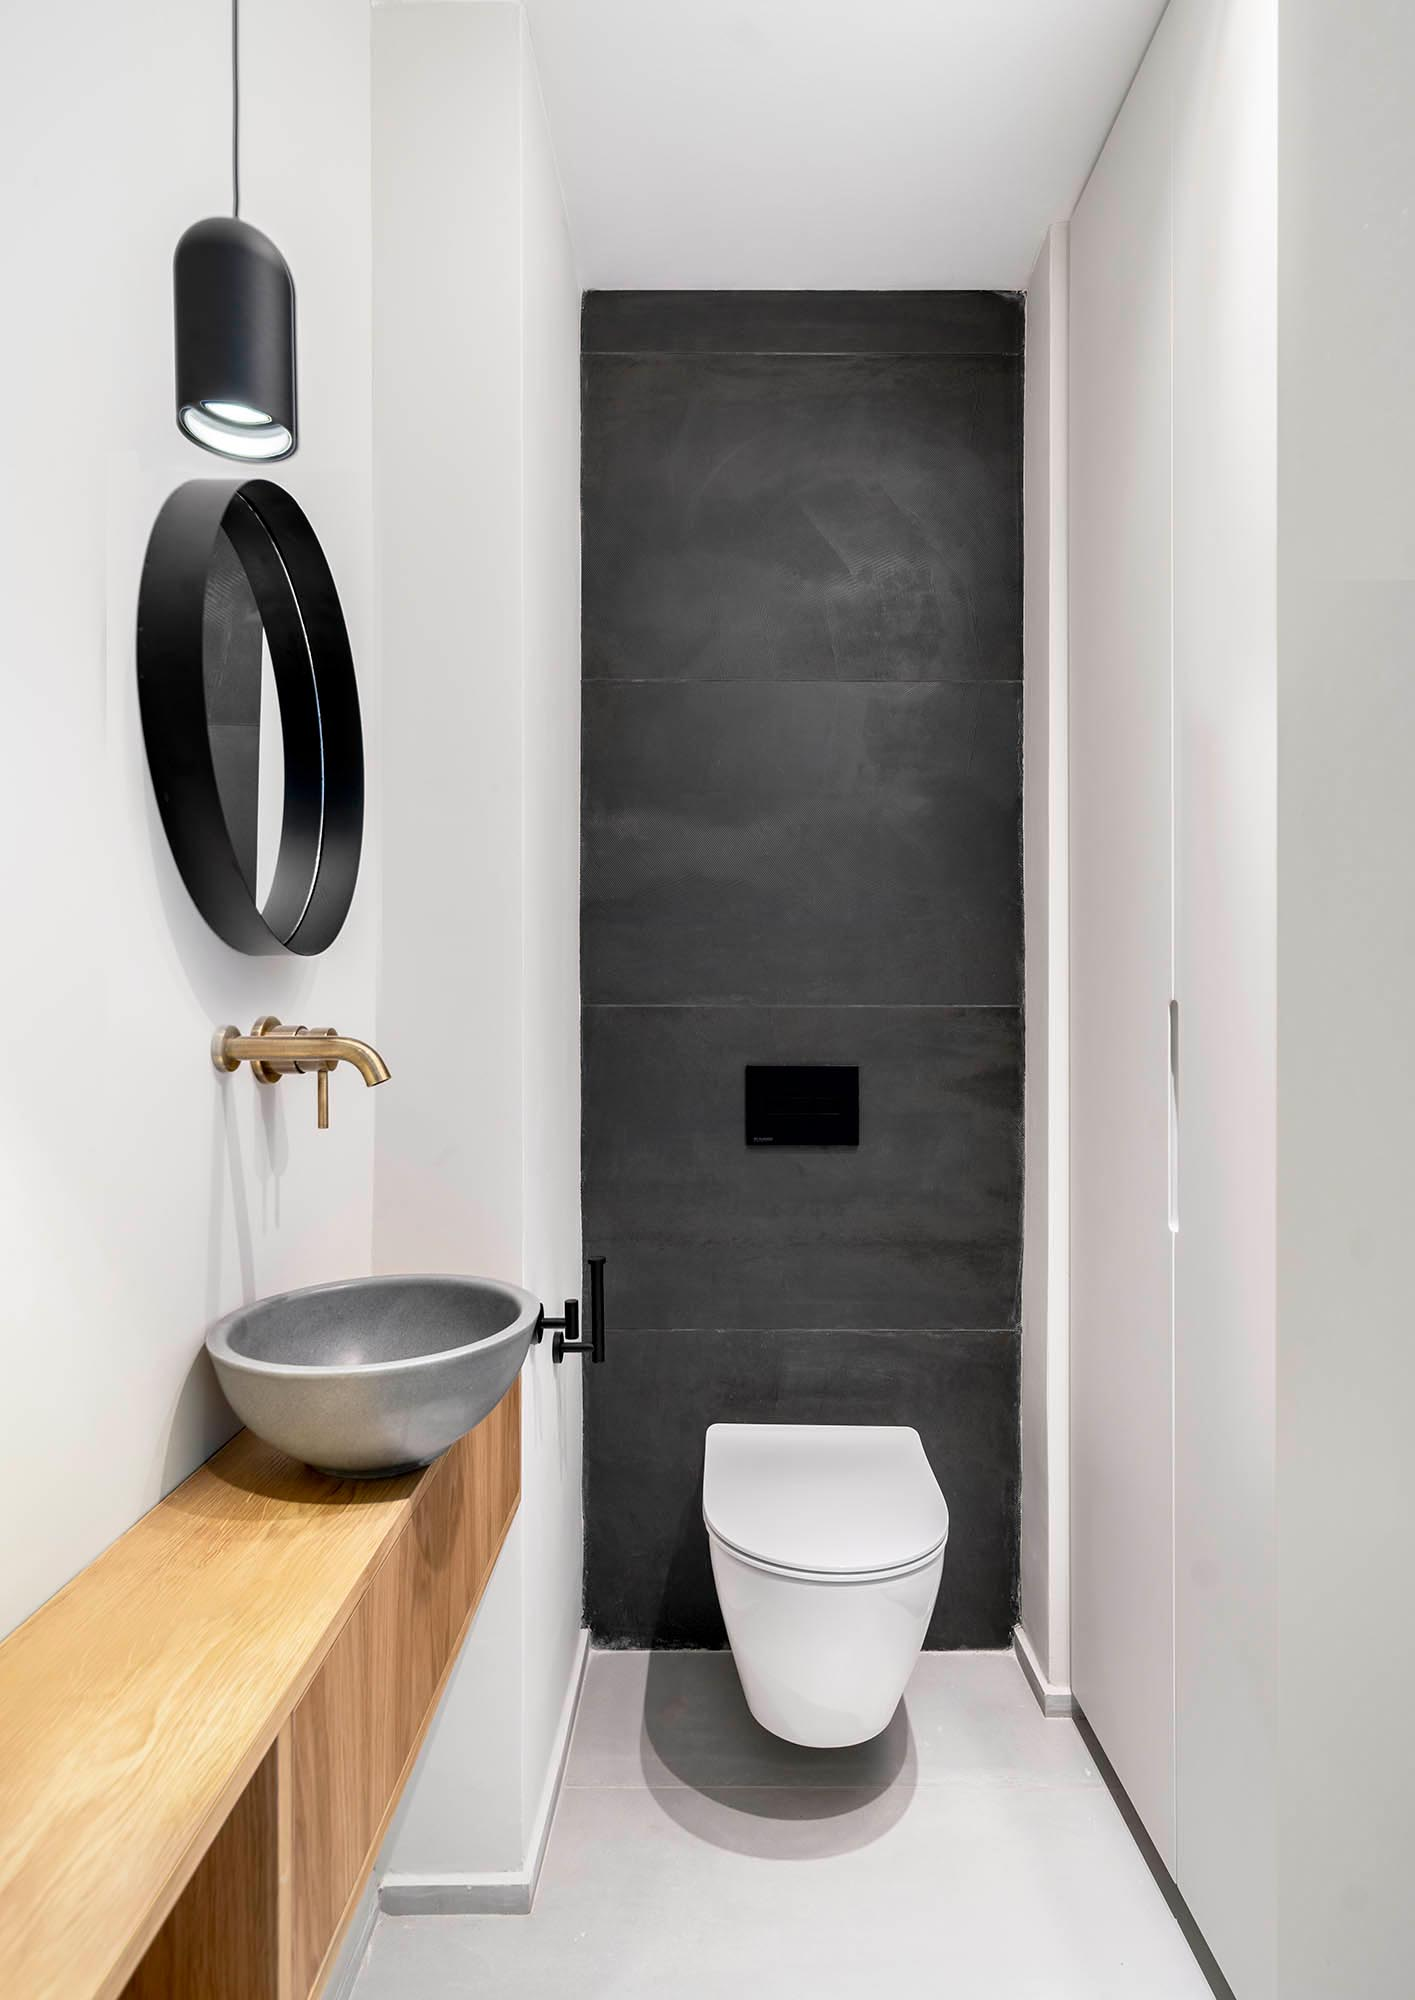 A powder room with large format matte black tiles line the wall behind the toilet, a wood vanity topped with a gray vessel sink, and bronze hardware.